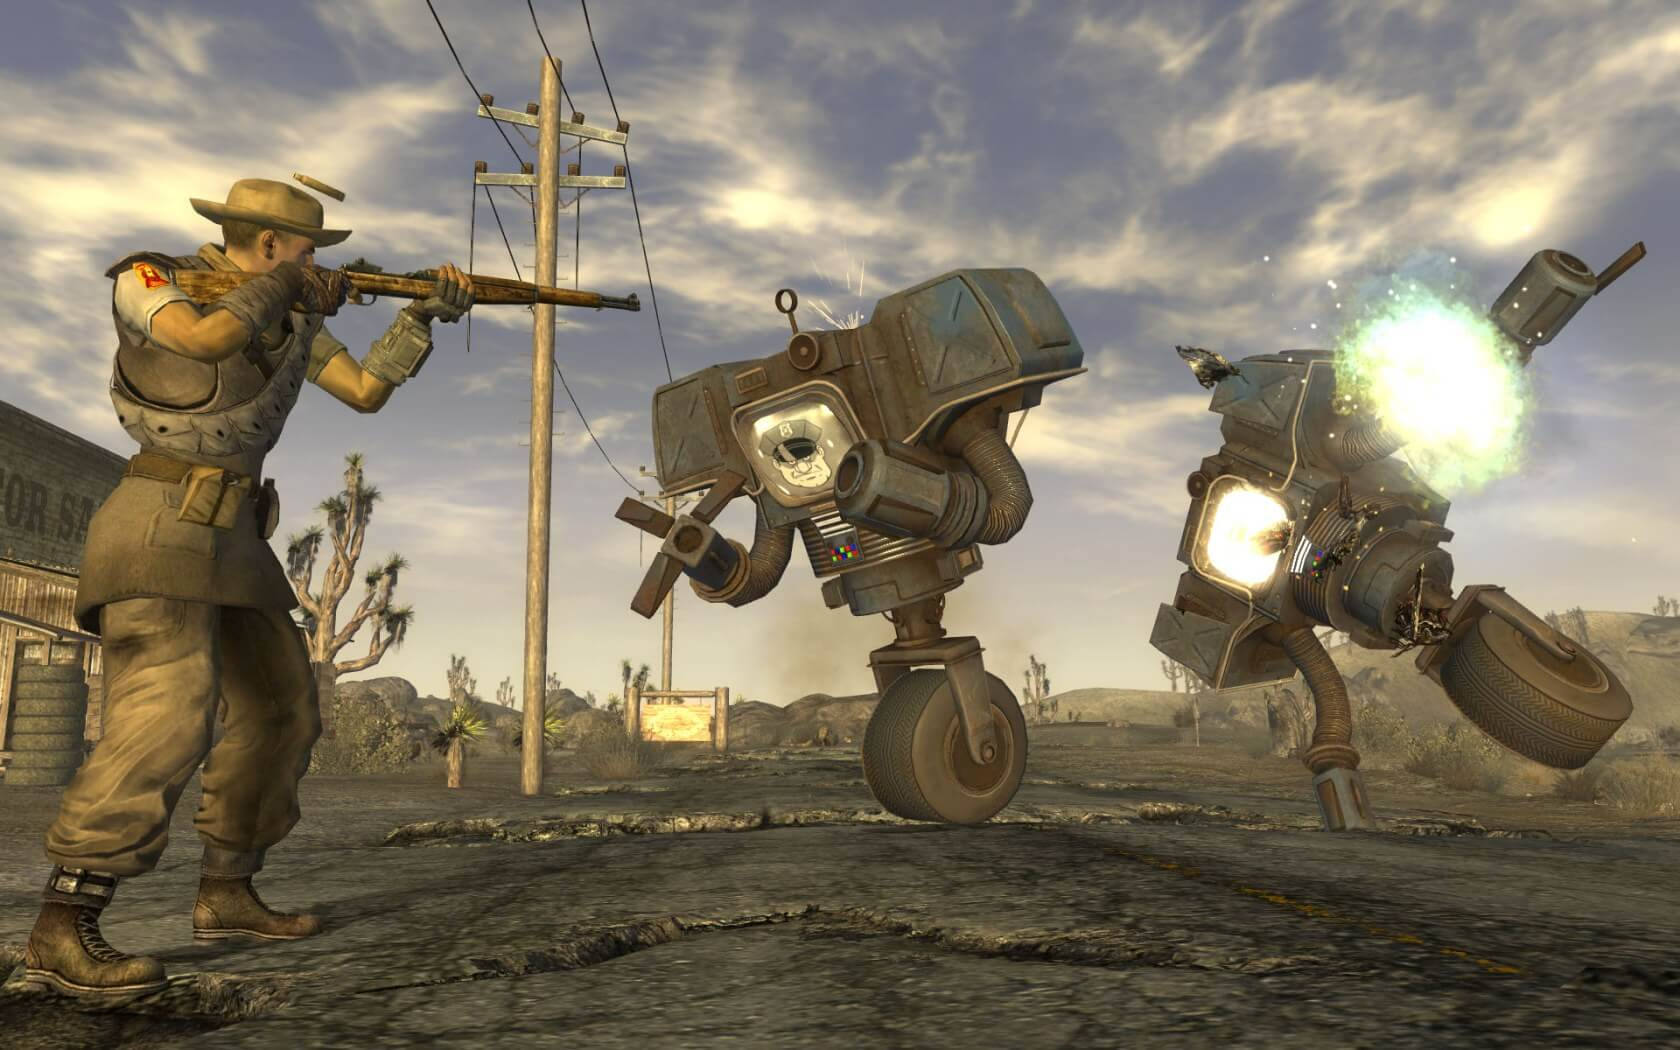 Rumor: Microsoft to Acquire 'Fallout: New Vegas' Developer Obsidian Entertainment